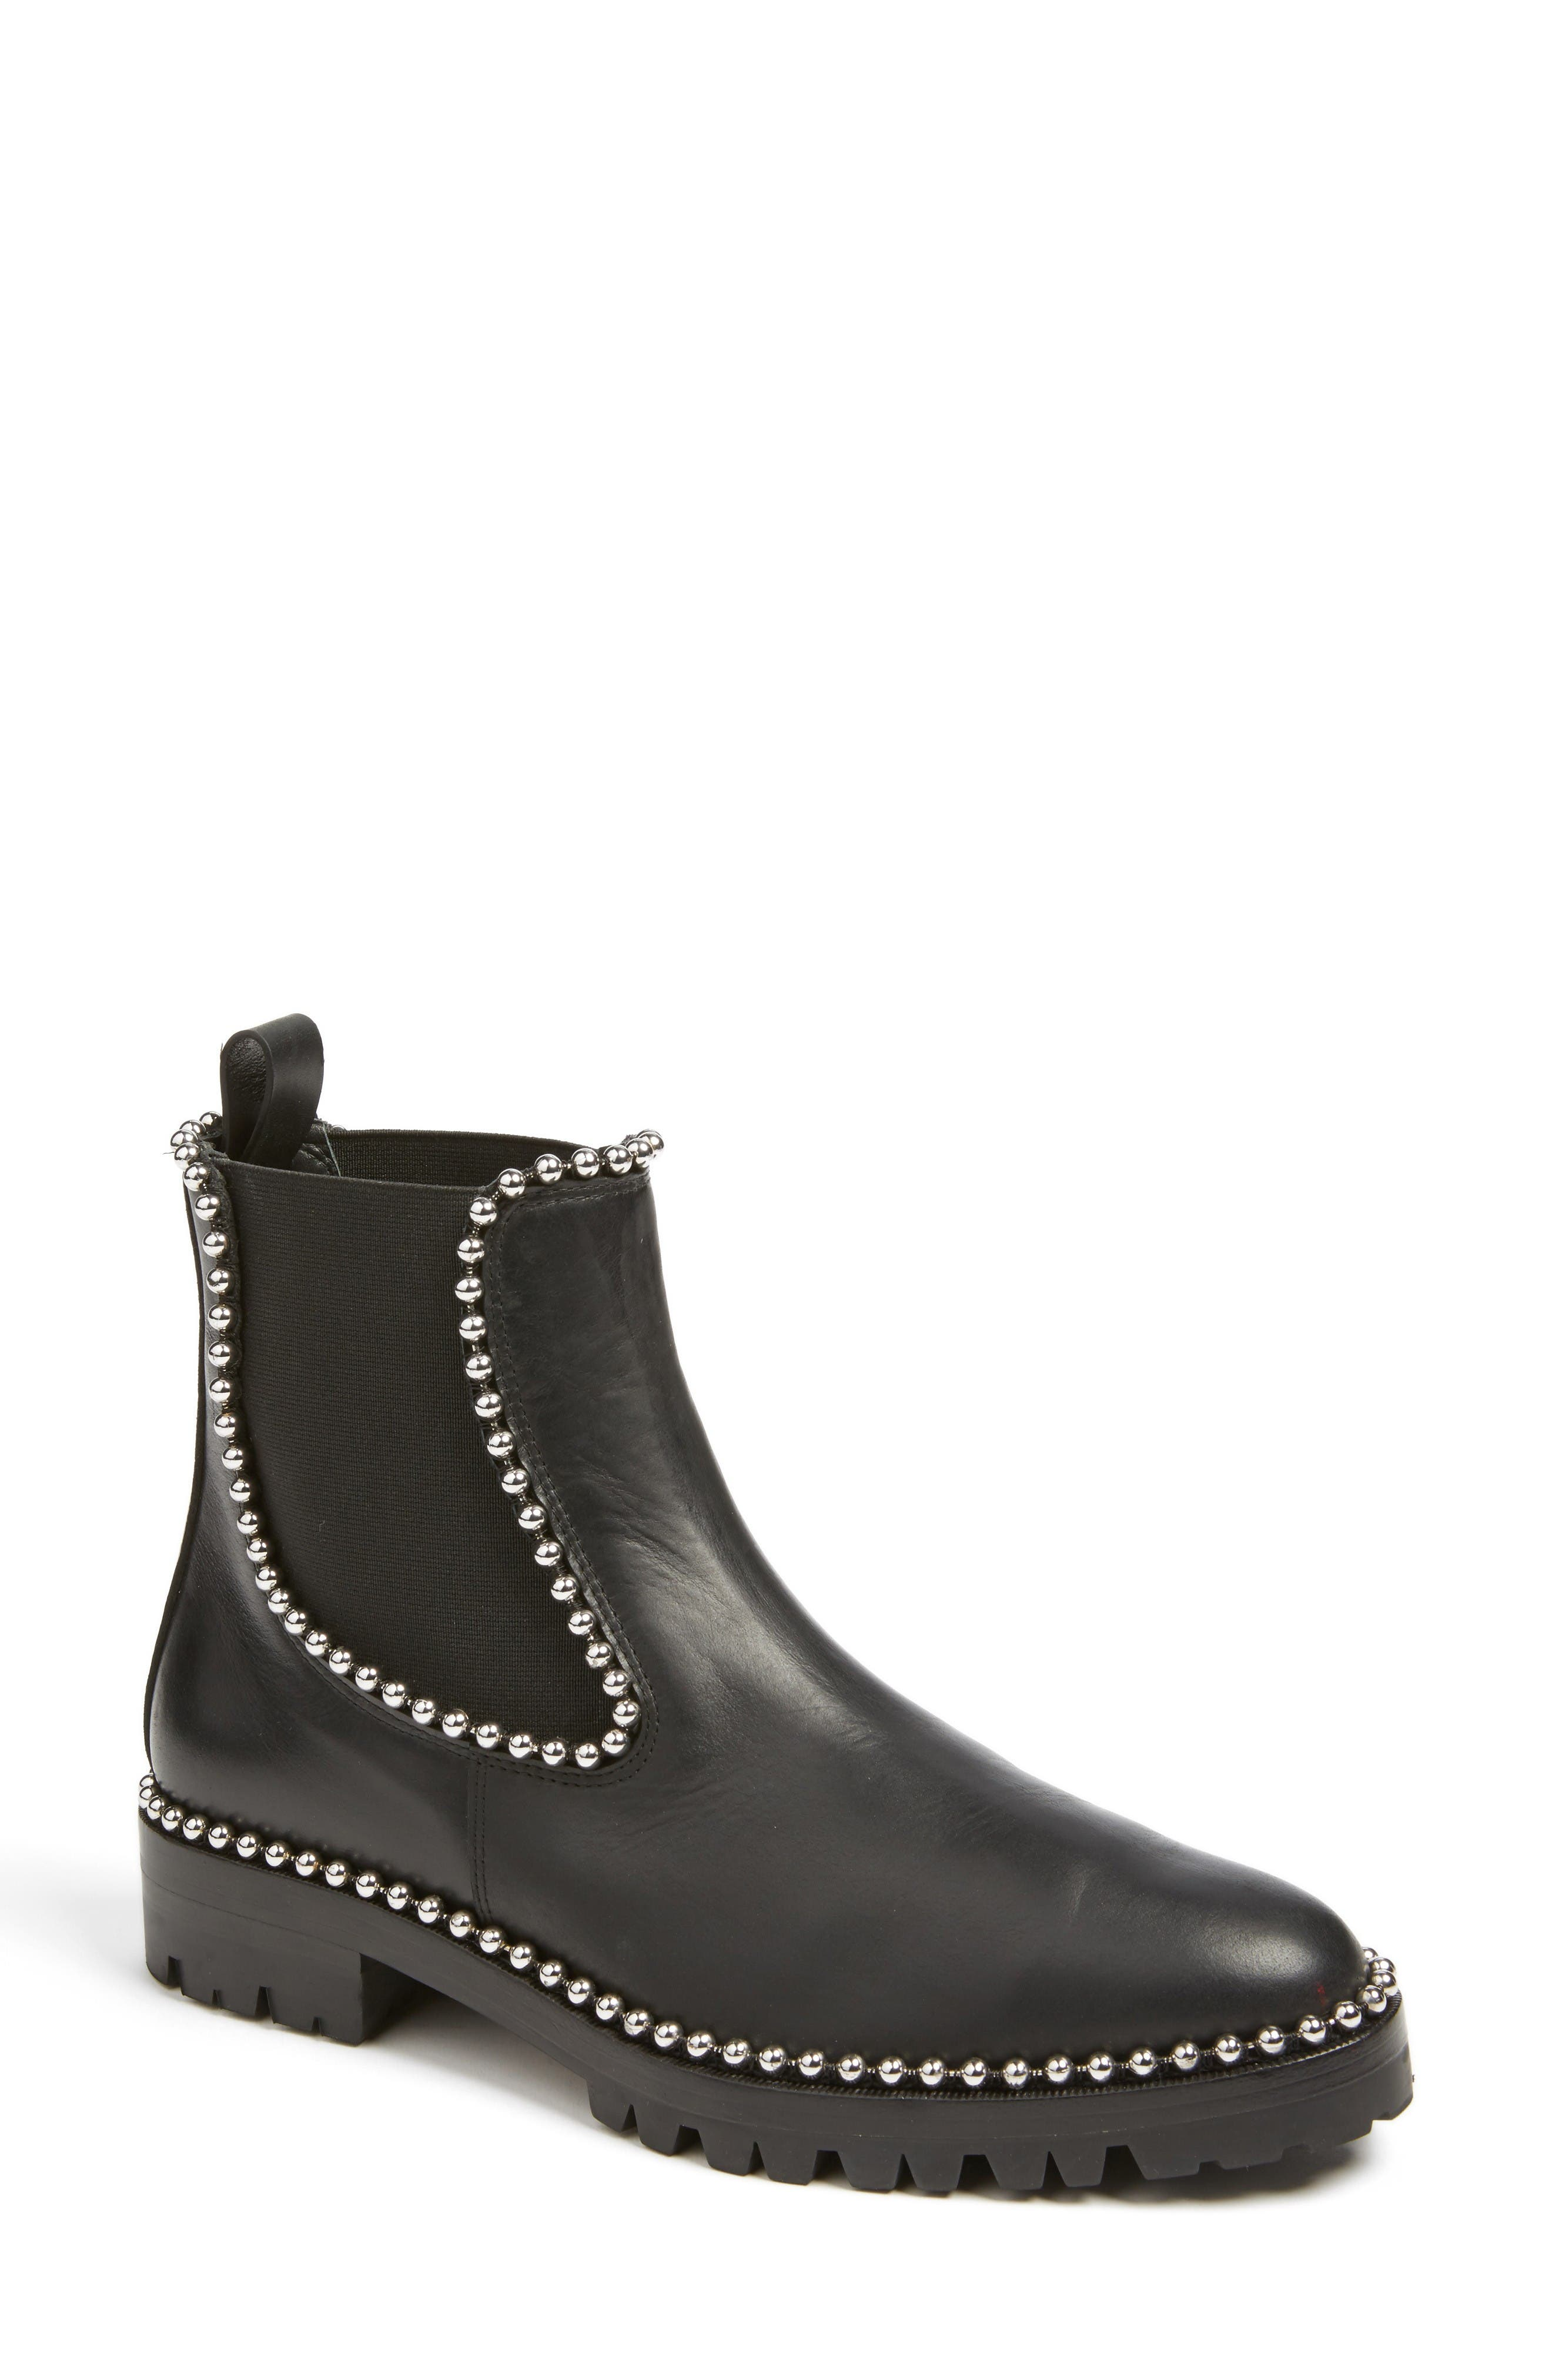 Spencer Chelsea Boot,                         Main,                         color, Black Leather